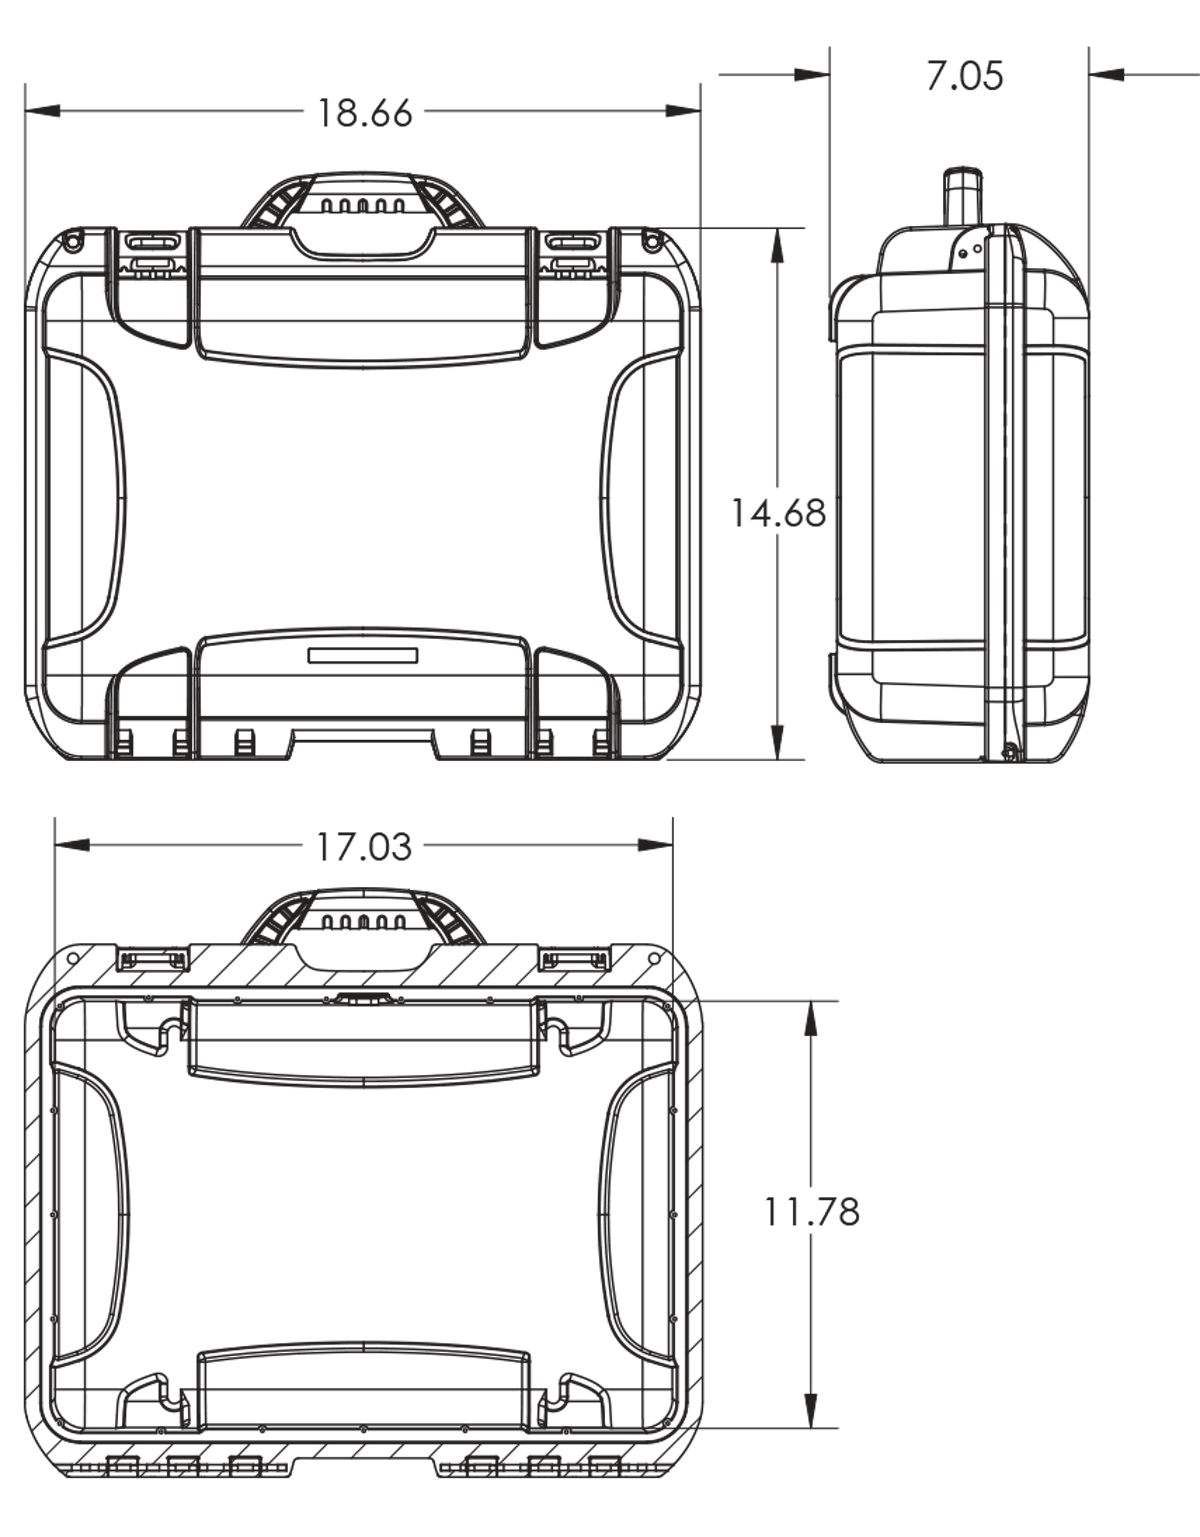 Dimensions of the Nanuk 925 4 Up Pistol Hard Case